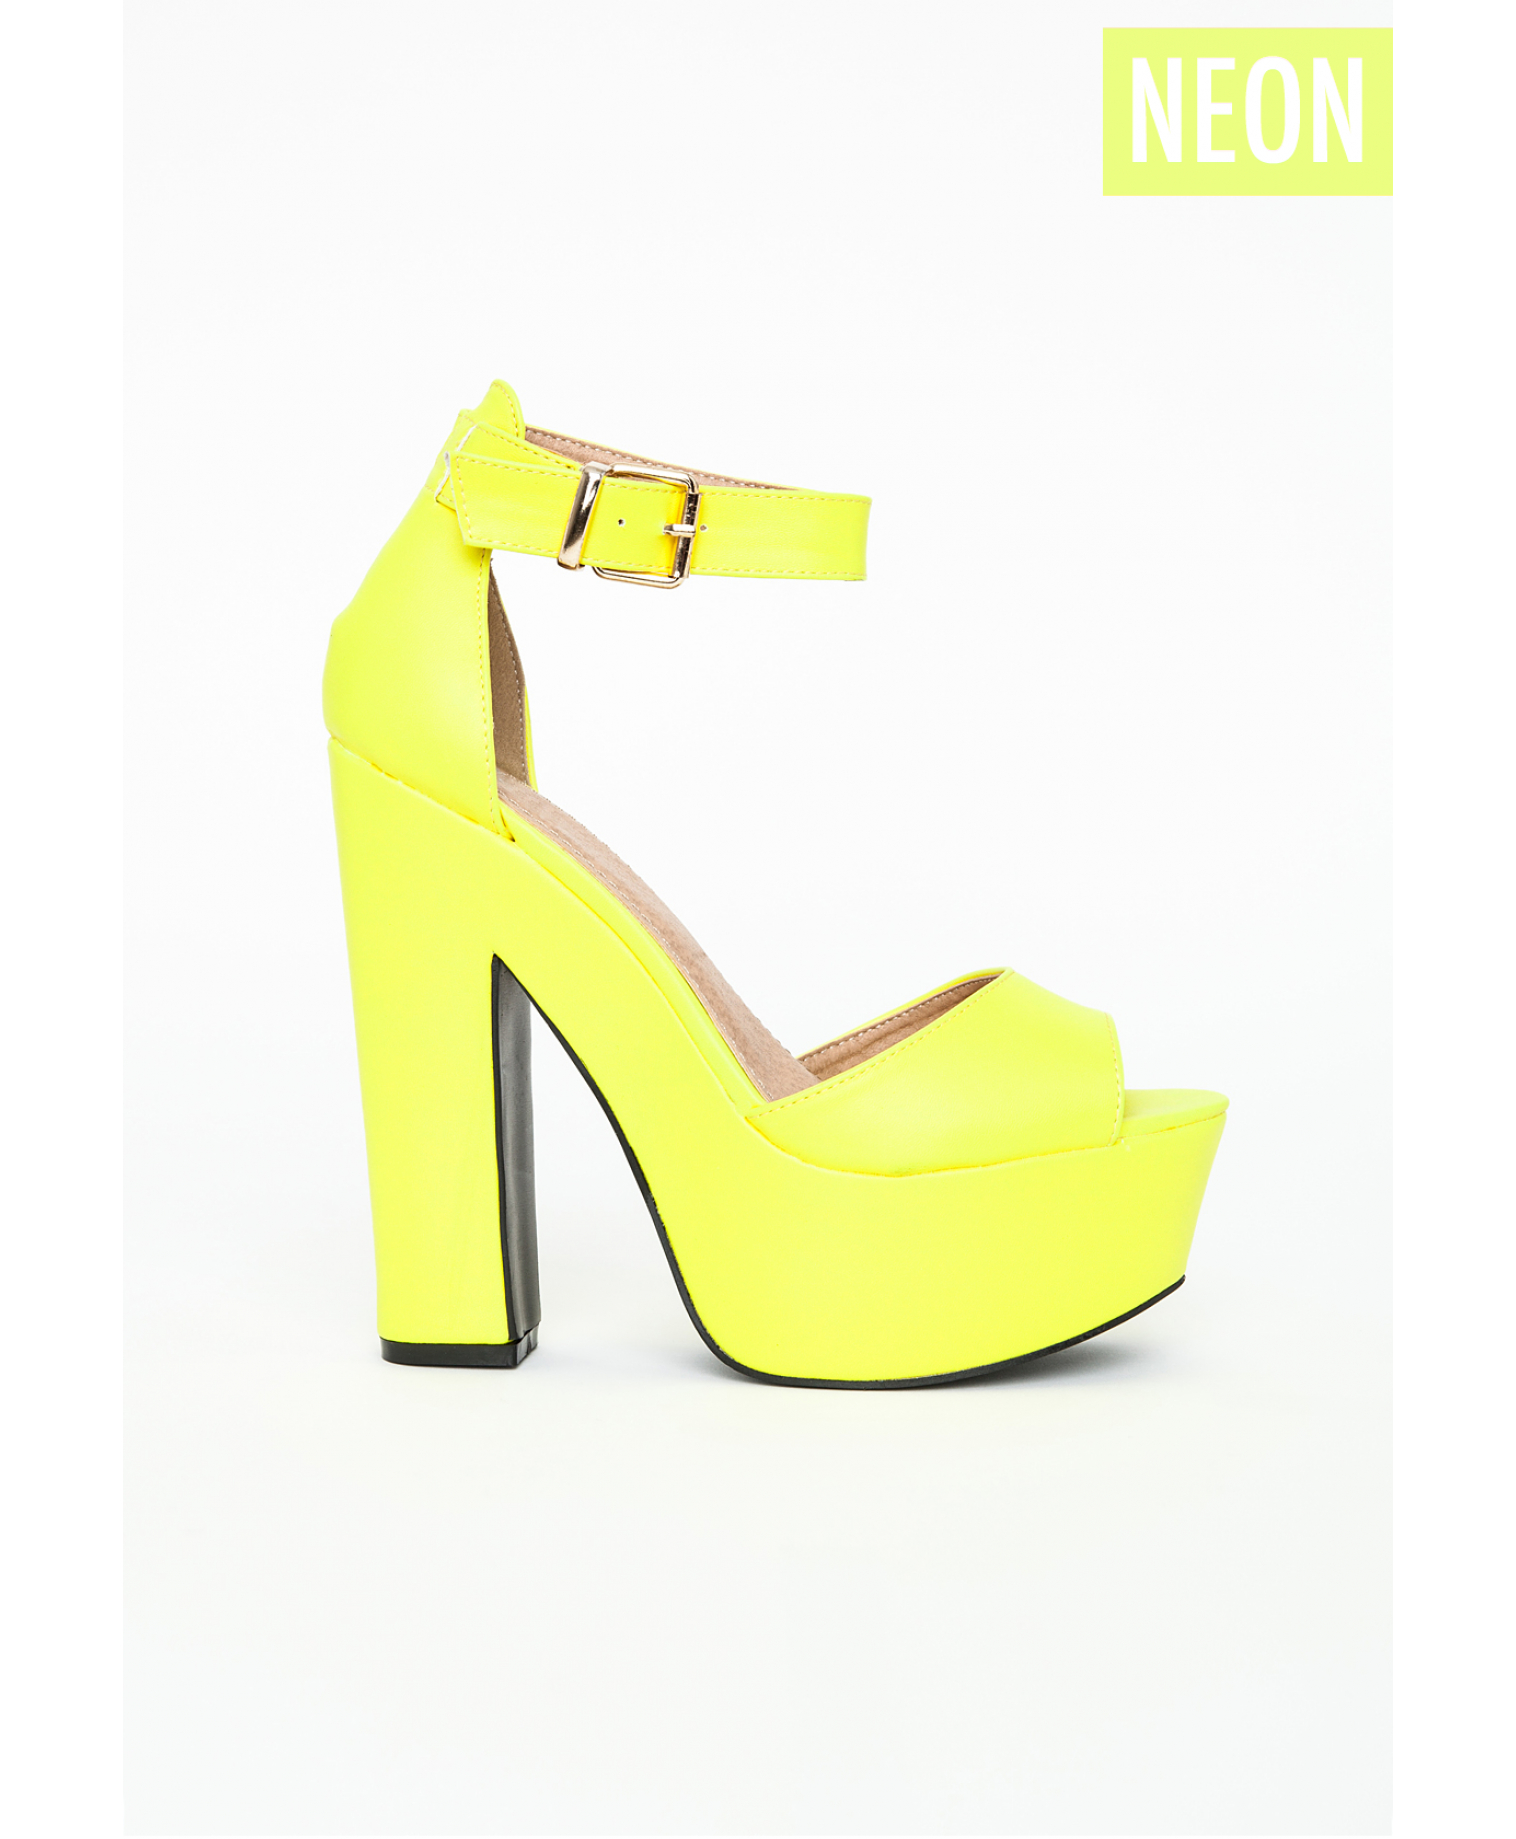 b42c3841e824 Lyst - Missguided Alana Platform Block Heels In Neon Yellow in Yellow